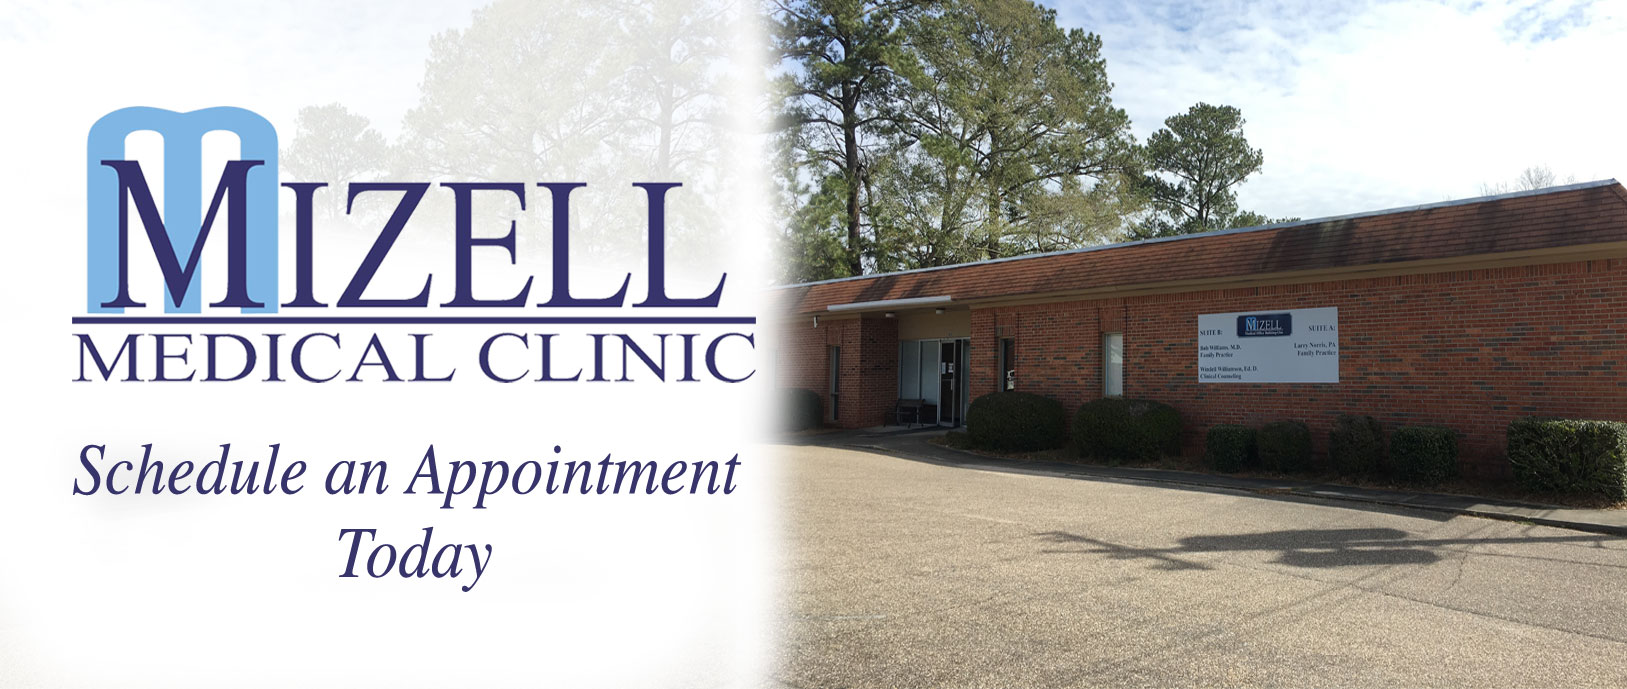 Mizell Medical Clinic, schedule an appointment today with an image of the building